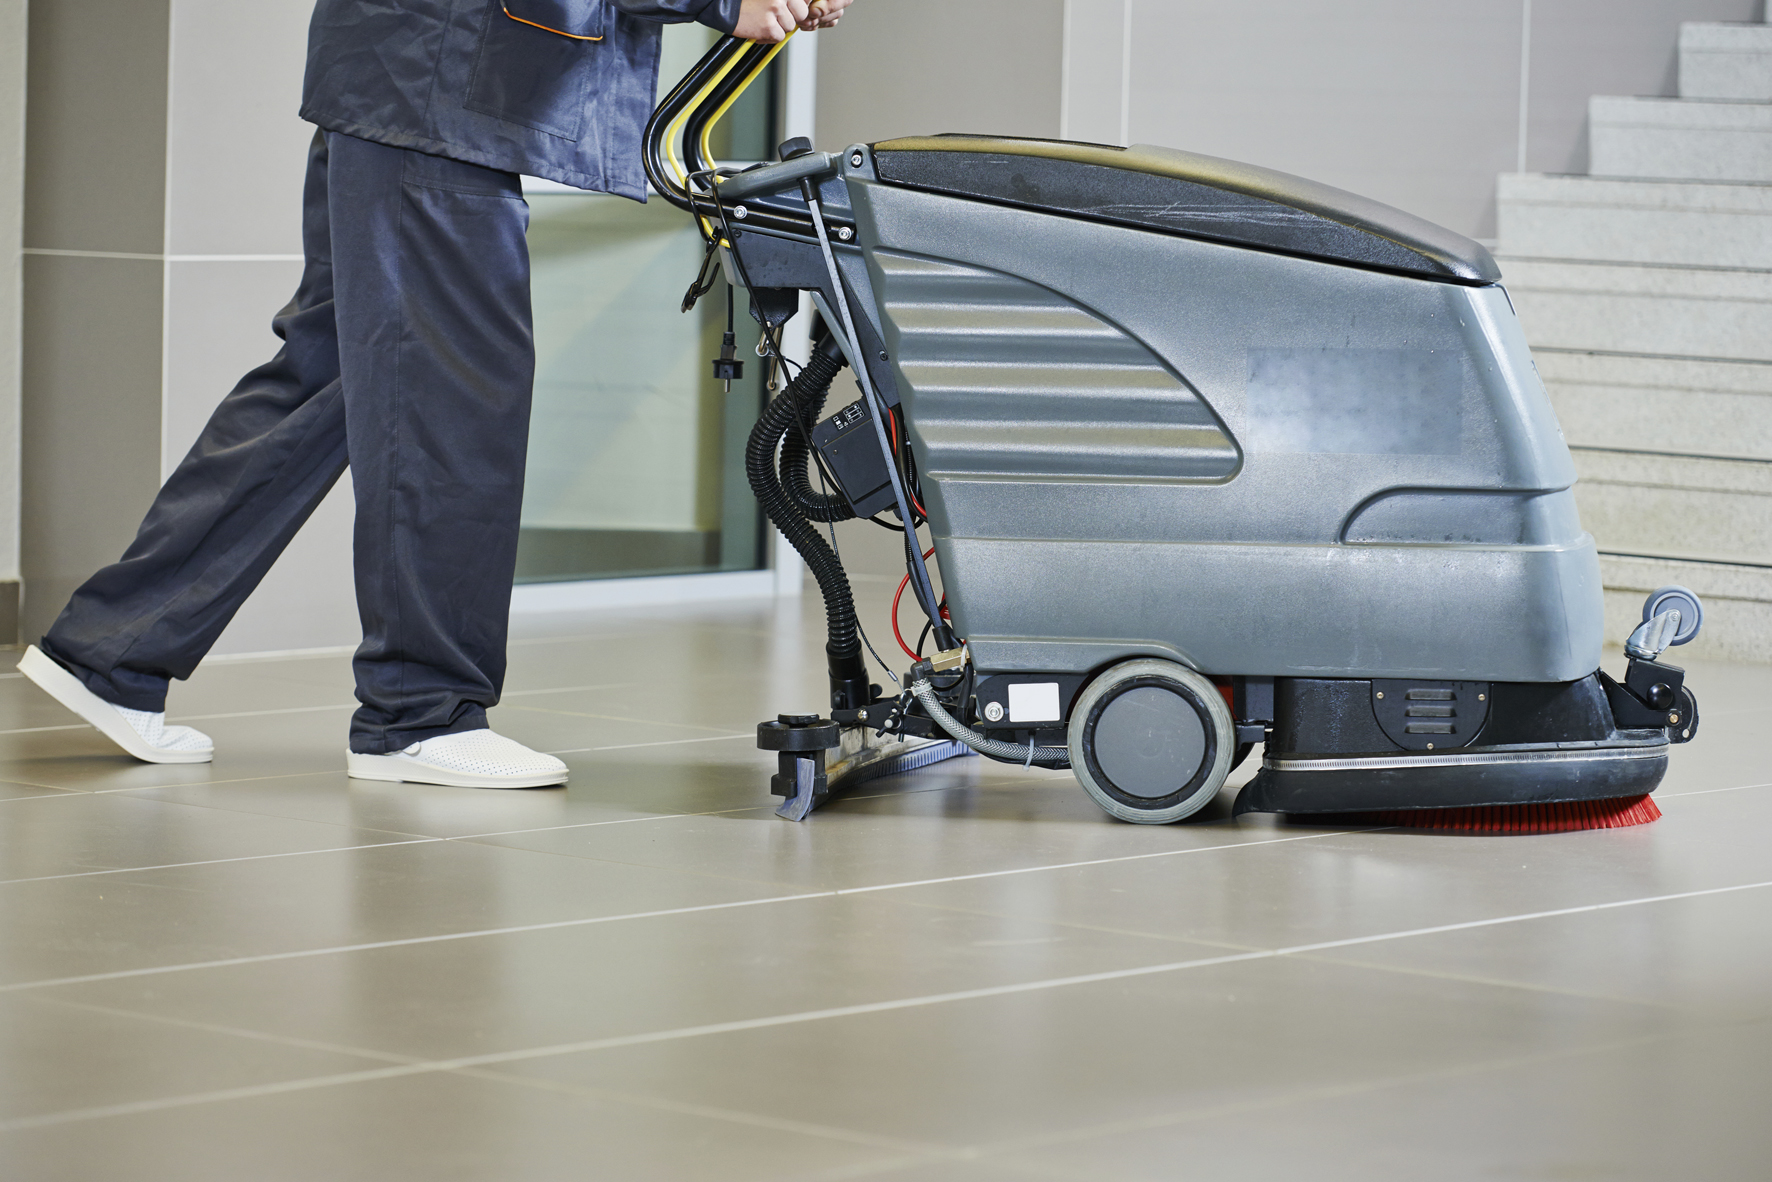 stock-photo-31404894-house-cleaning.jpg